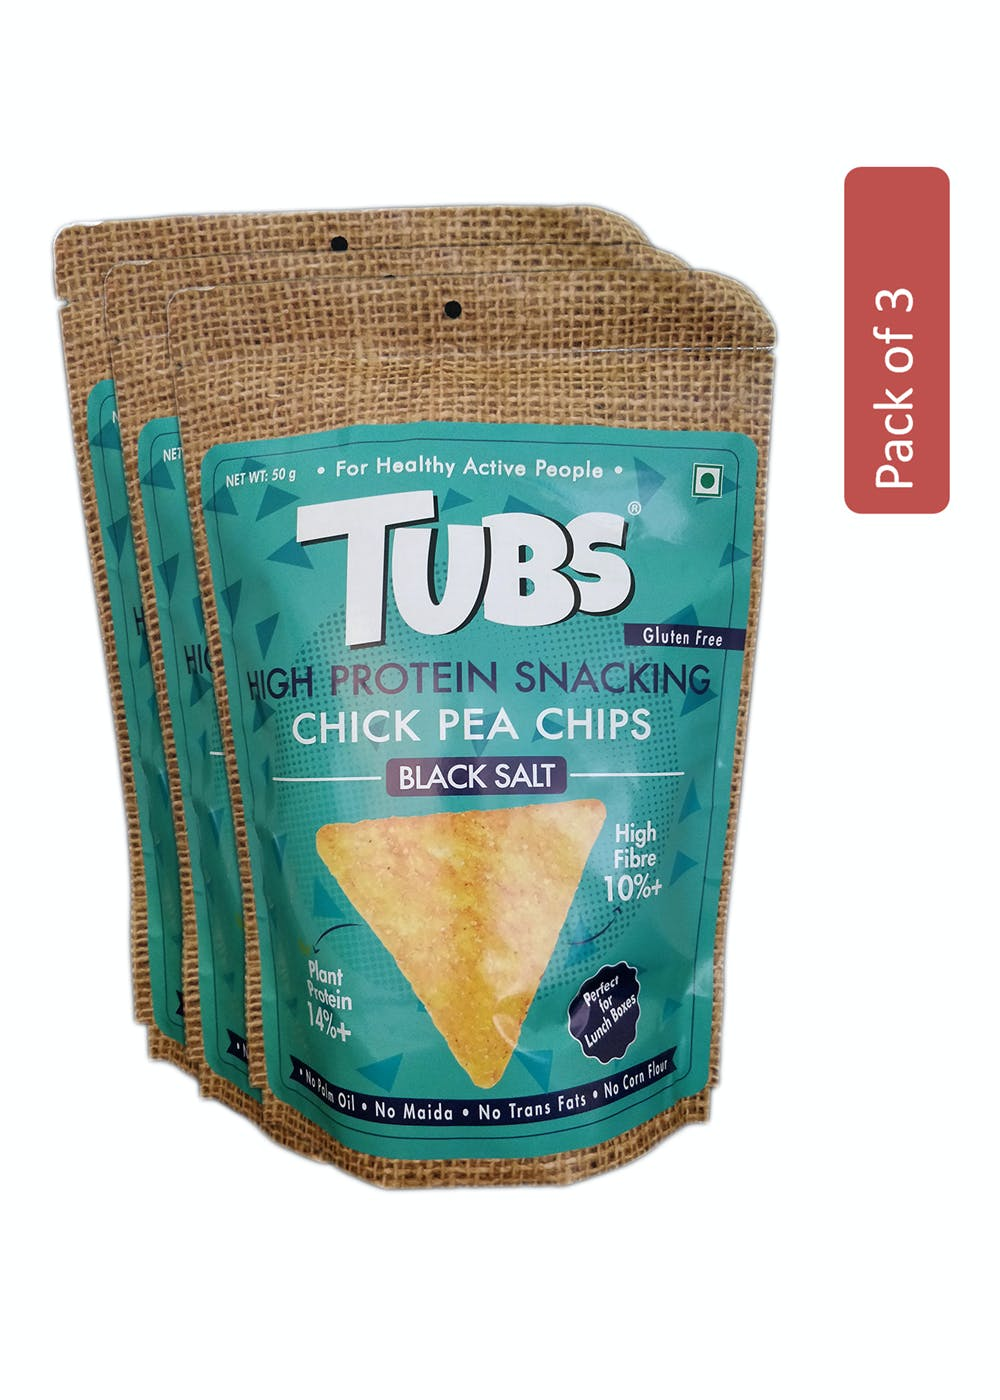 Chick Pea Black Salt 50 gm - Pack of 3 - High Plant Protein - High Fibre Chips